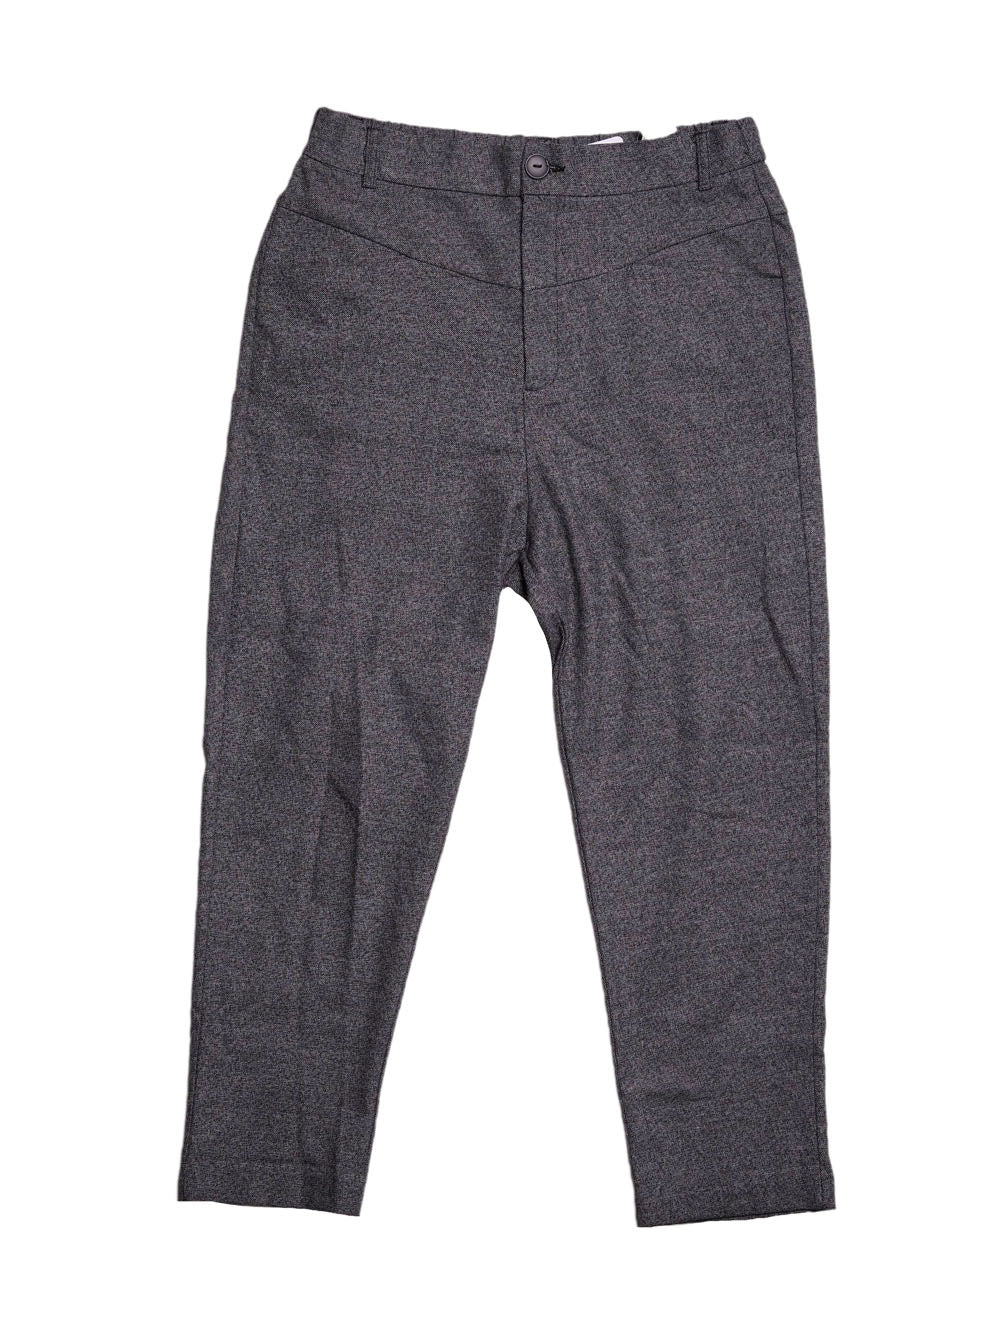 Front photo of Preloved Zara Grey Woman's trousers - size 10/M